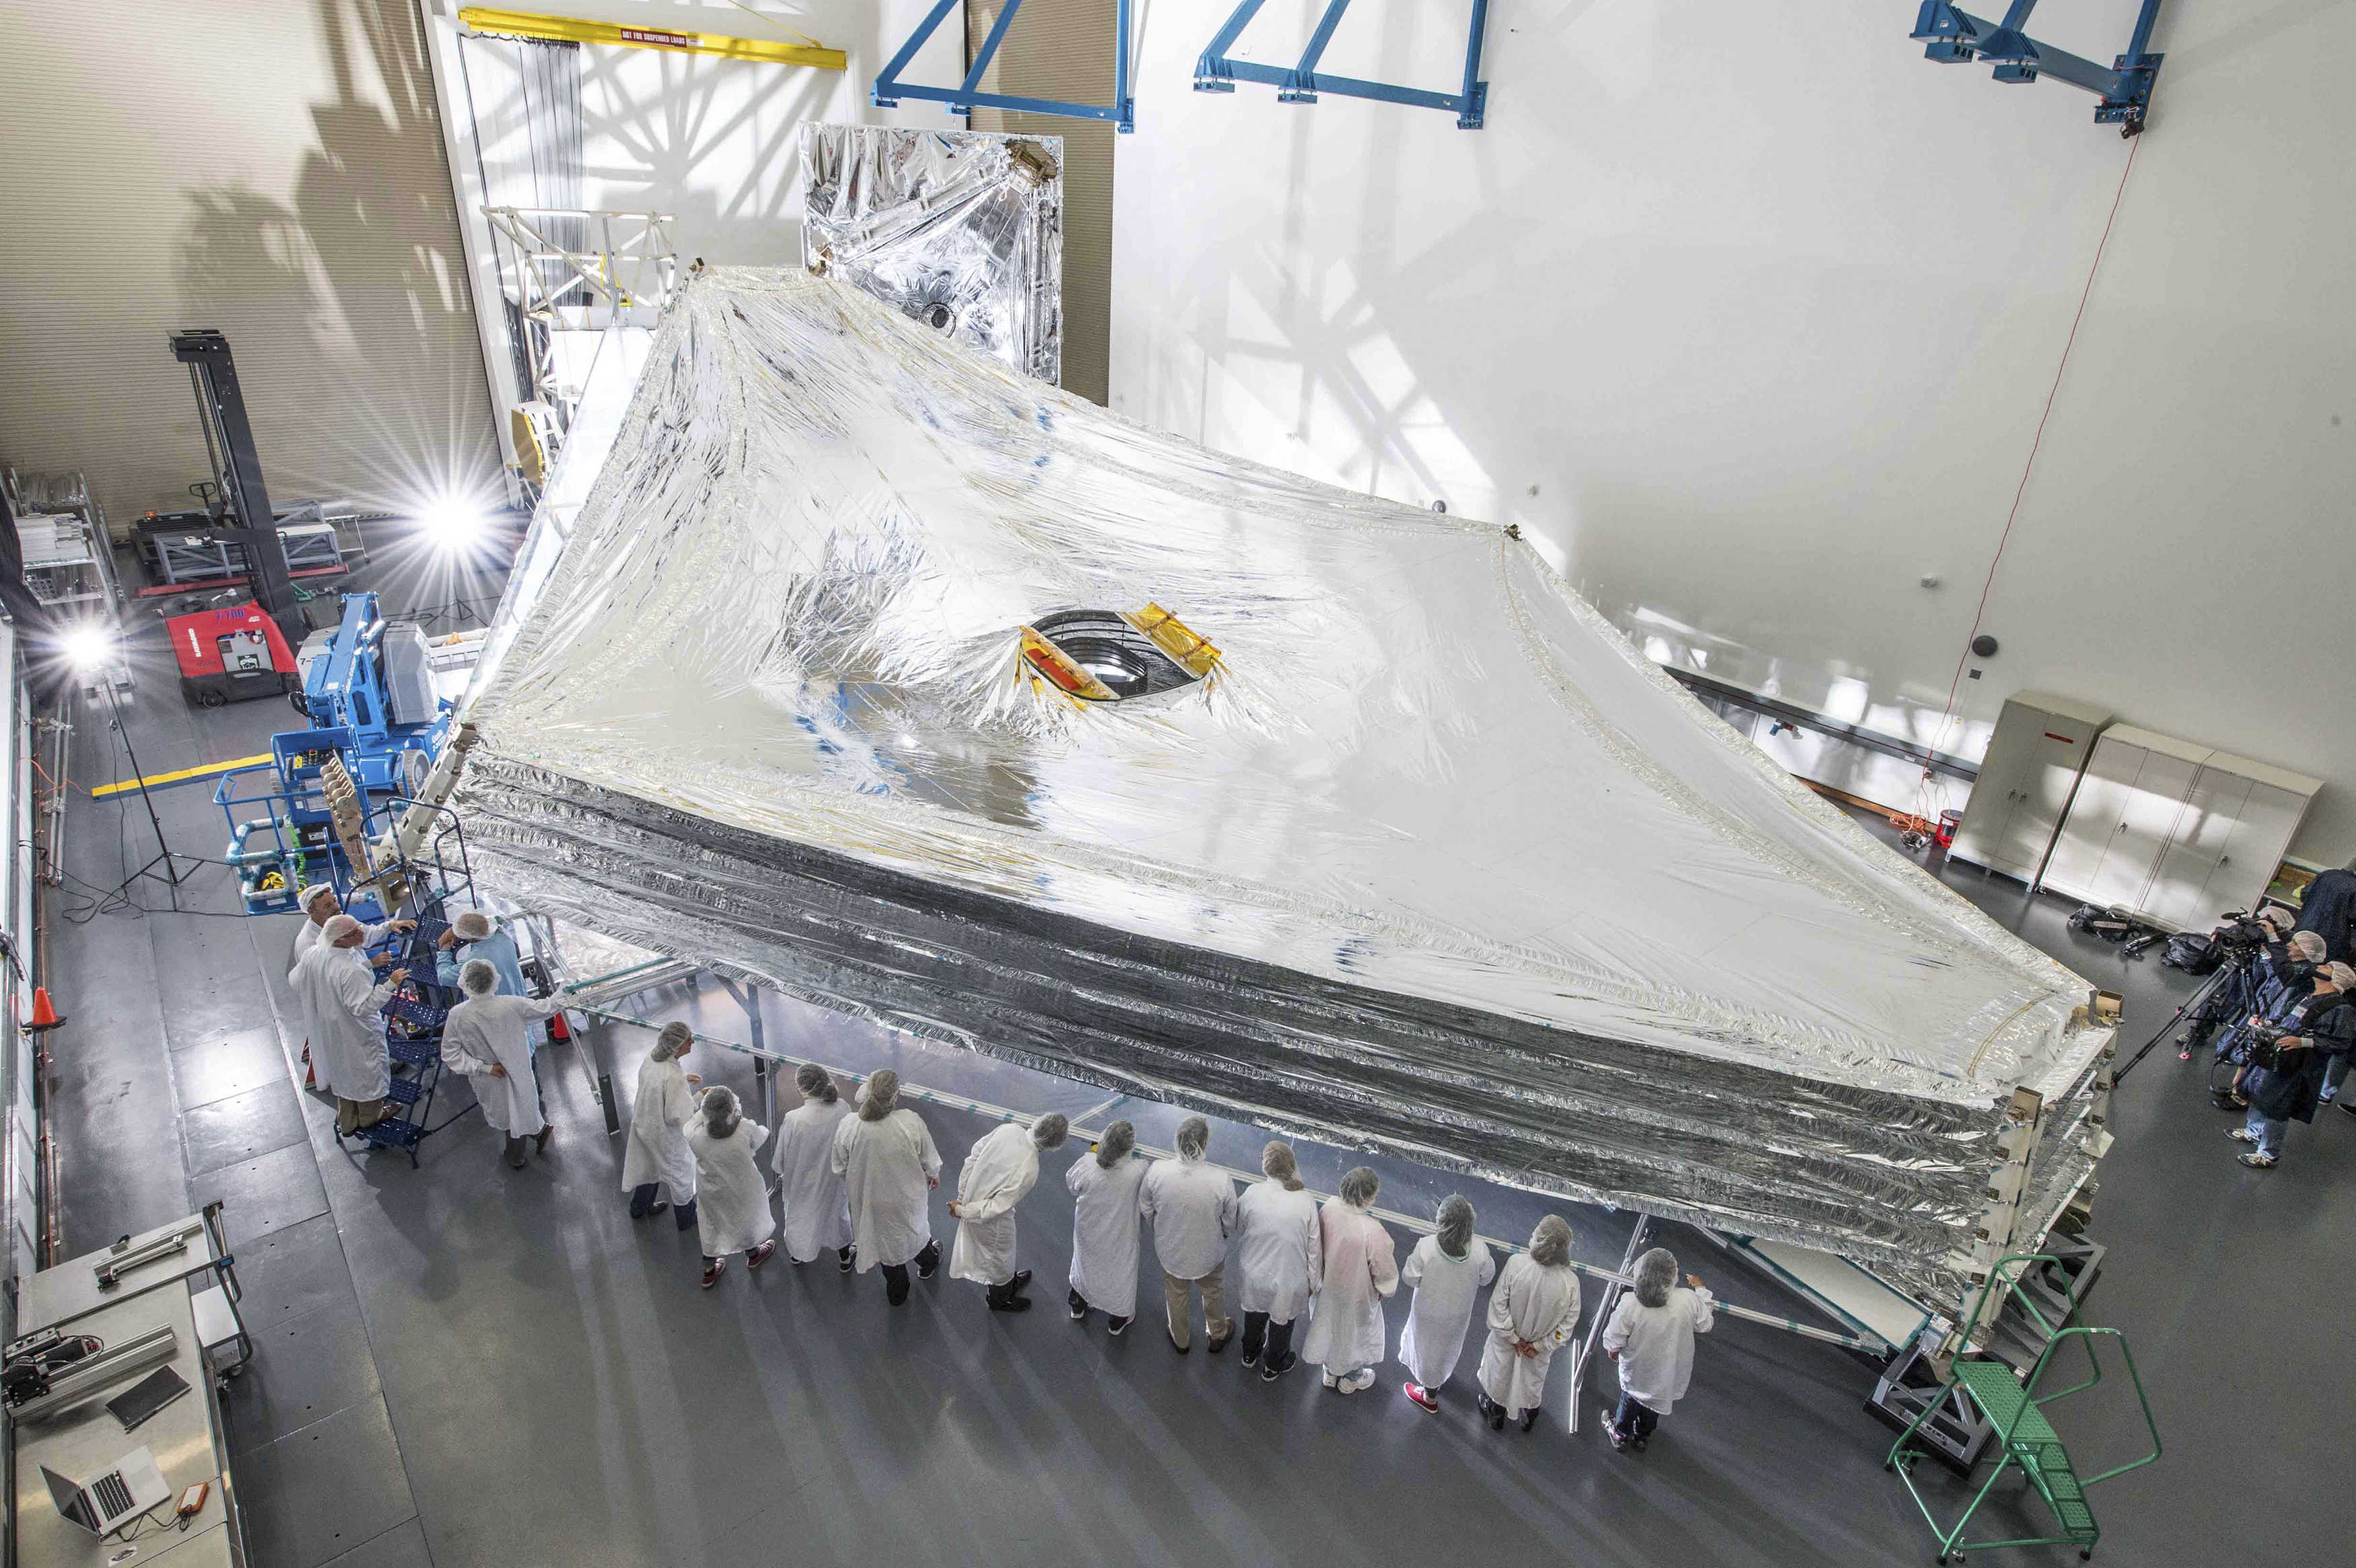 The Sunshield test unit to be used on NASA's James Webb Space Telescope is stacked and expanded at a cleanroom in the Northrop Grumman facility in Redondo Beach, Calif. on July 25, 2014.